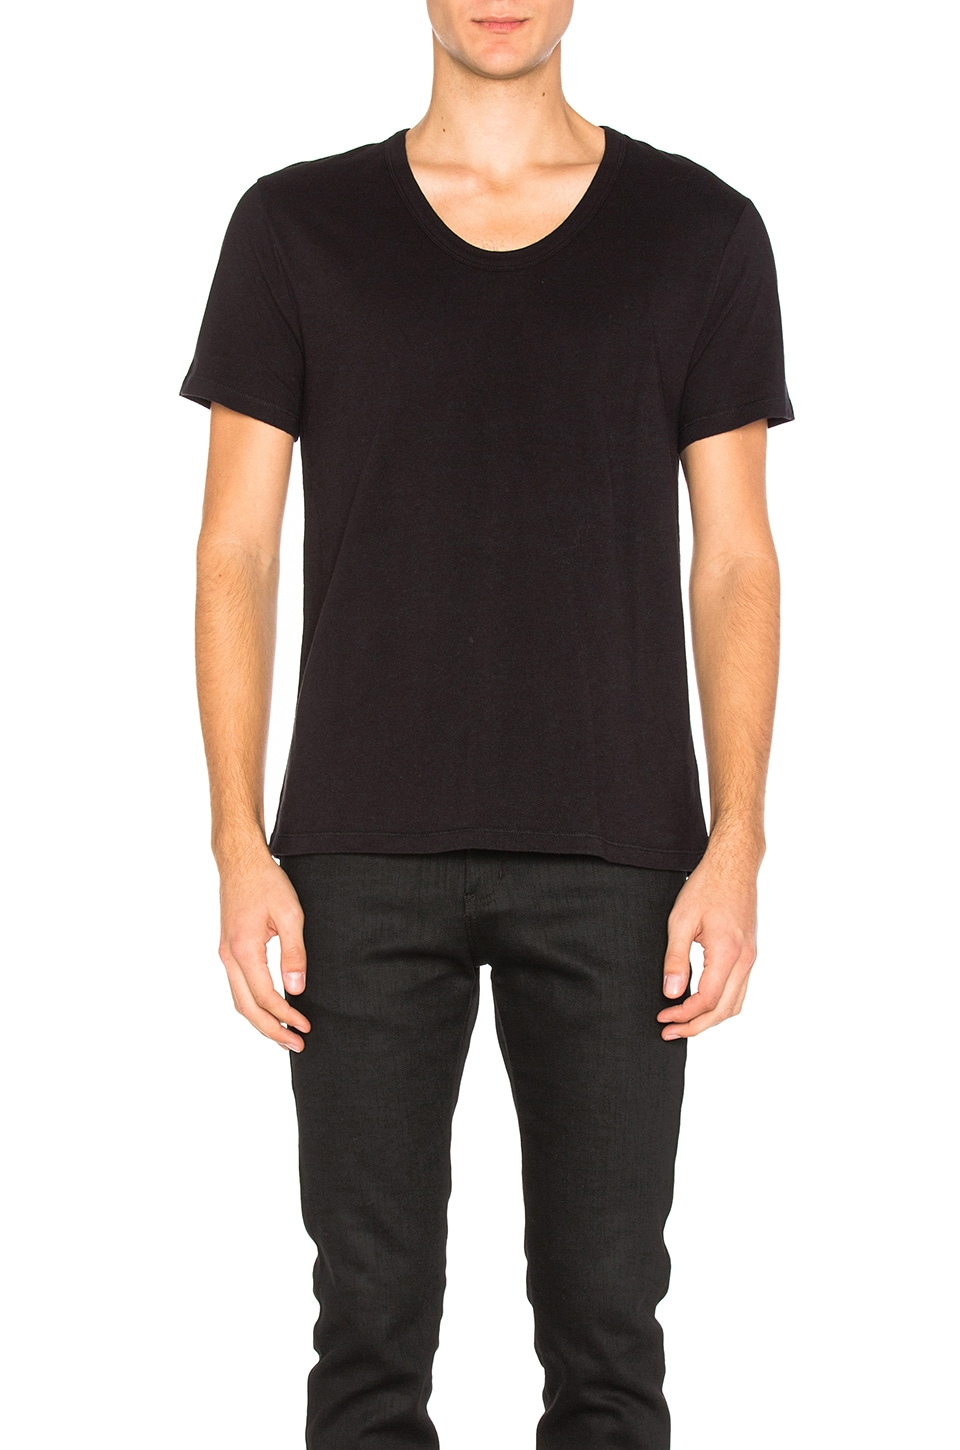 T by Alexander Wang Pima Cotton Low Neck Tee in Black